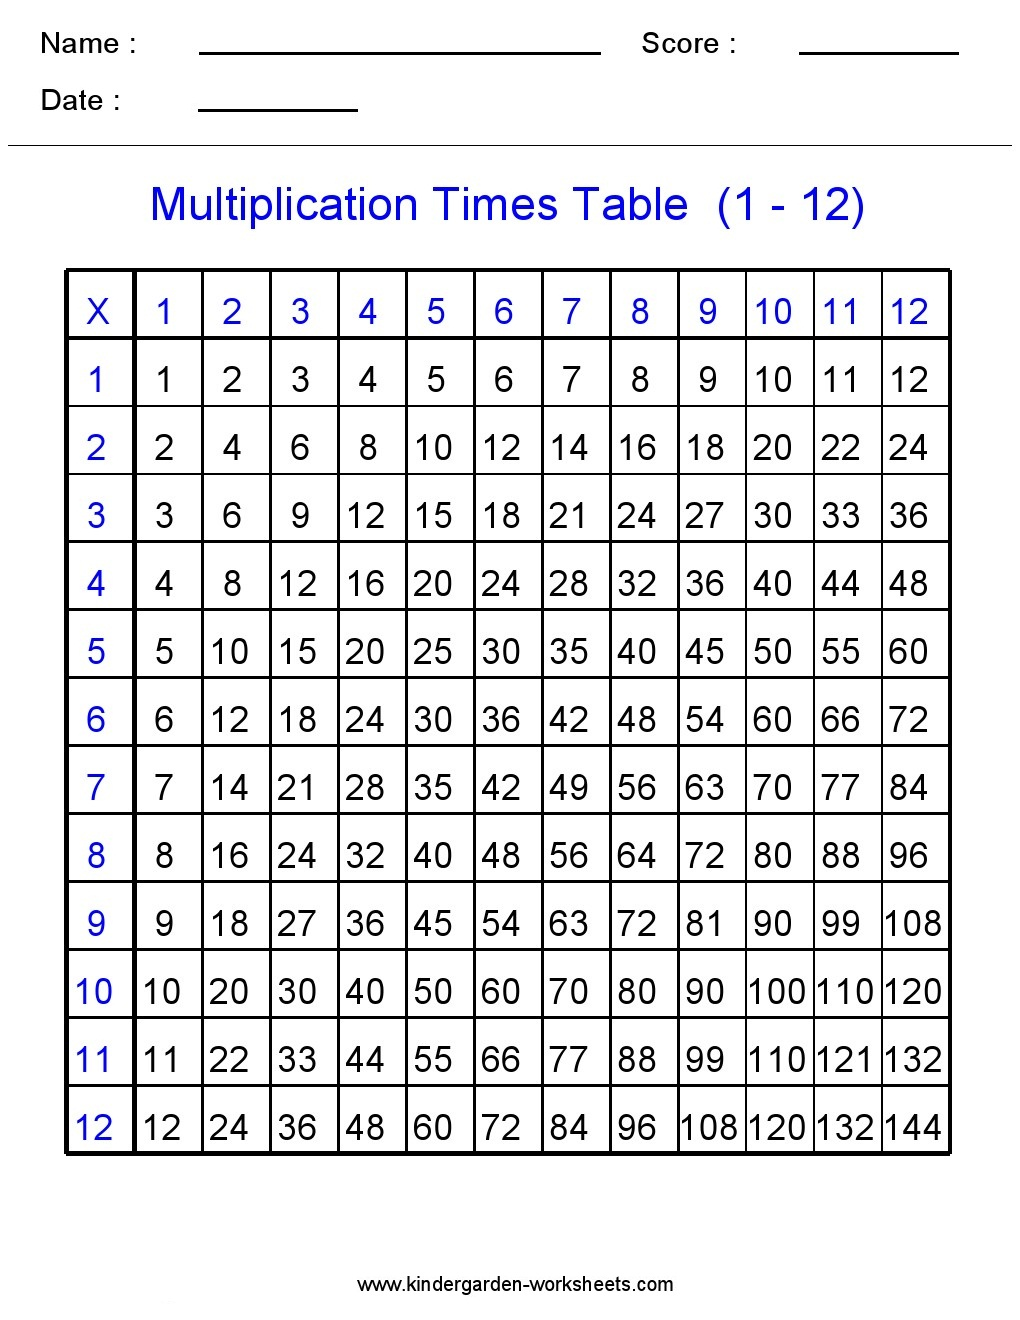 Addition table worksheet grade 1 multiplication table for Table 12 multiplication